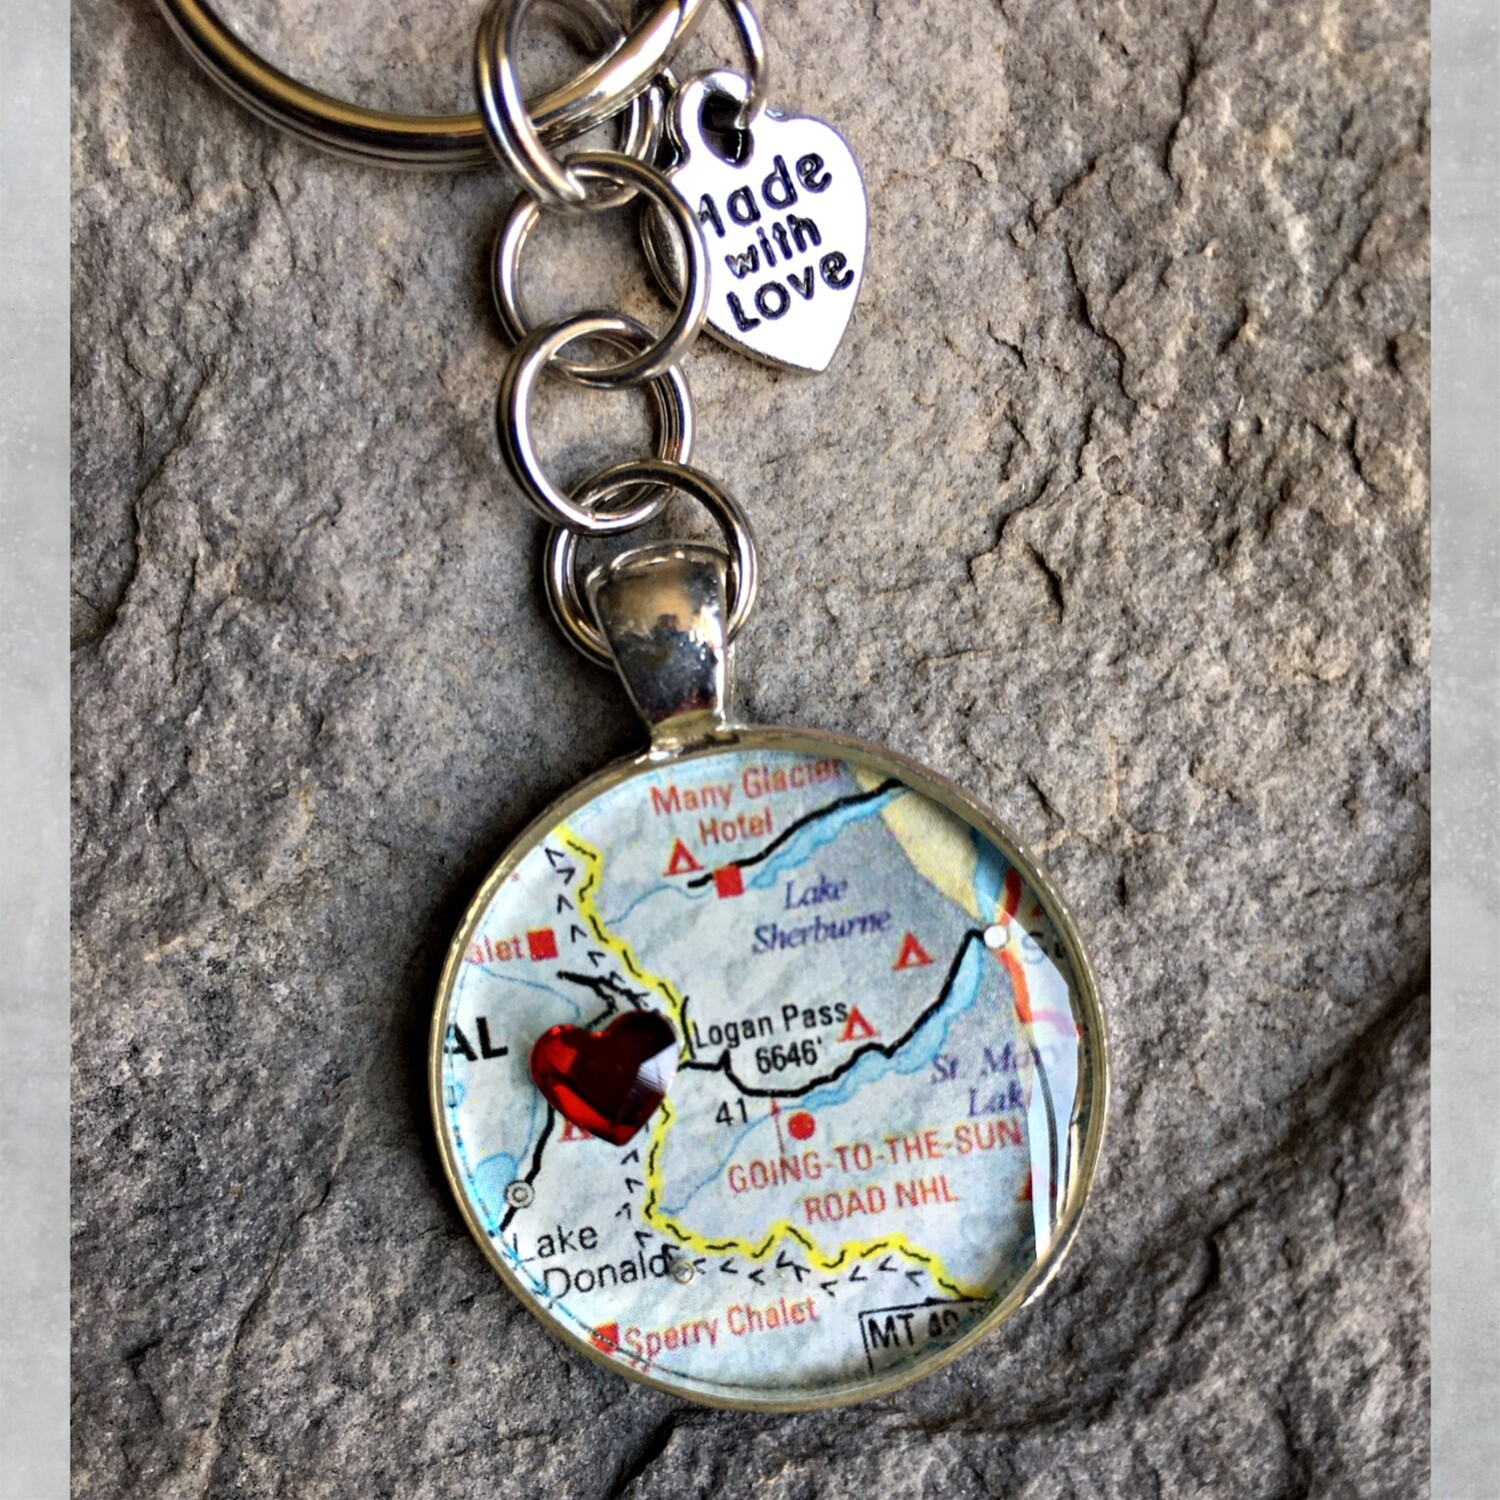 Logan Pass Map Keychain 40-19-18